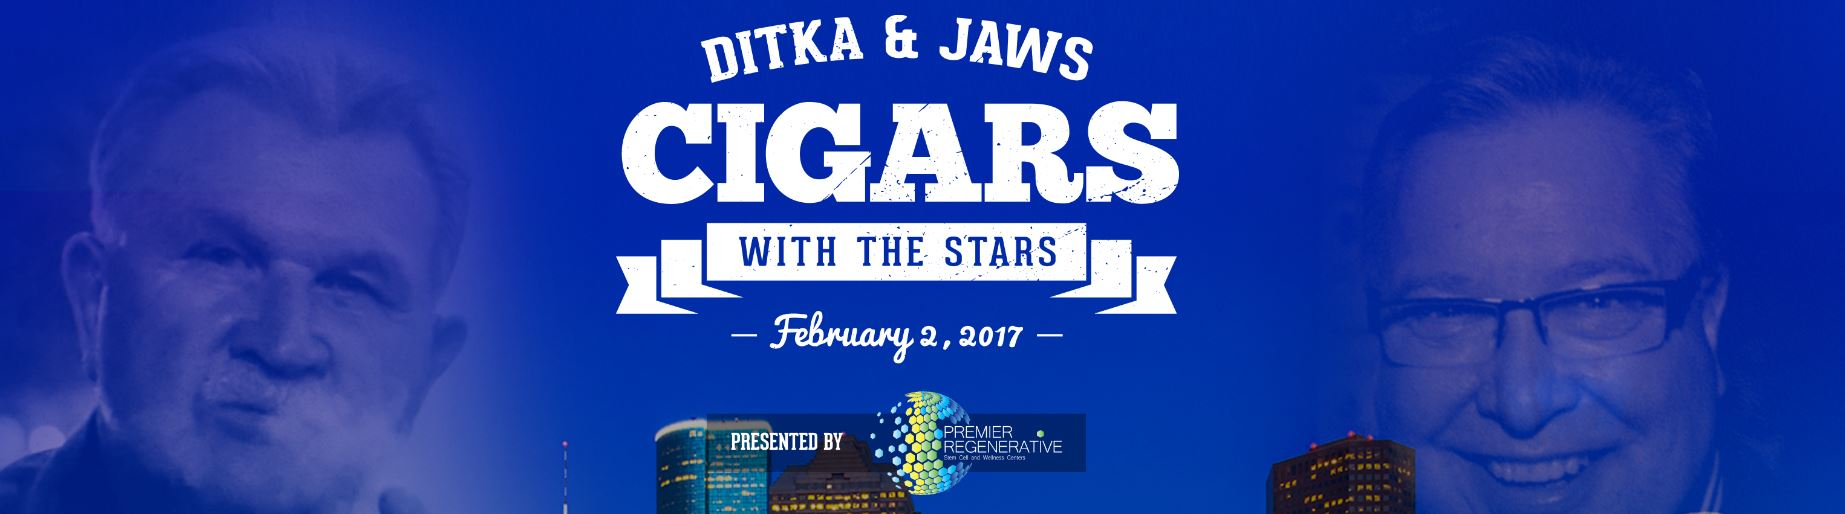 Cigars With the Stars Housto Super Bowl Party Tickets 2017 Super Bowl Events